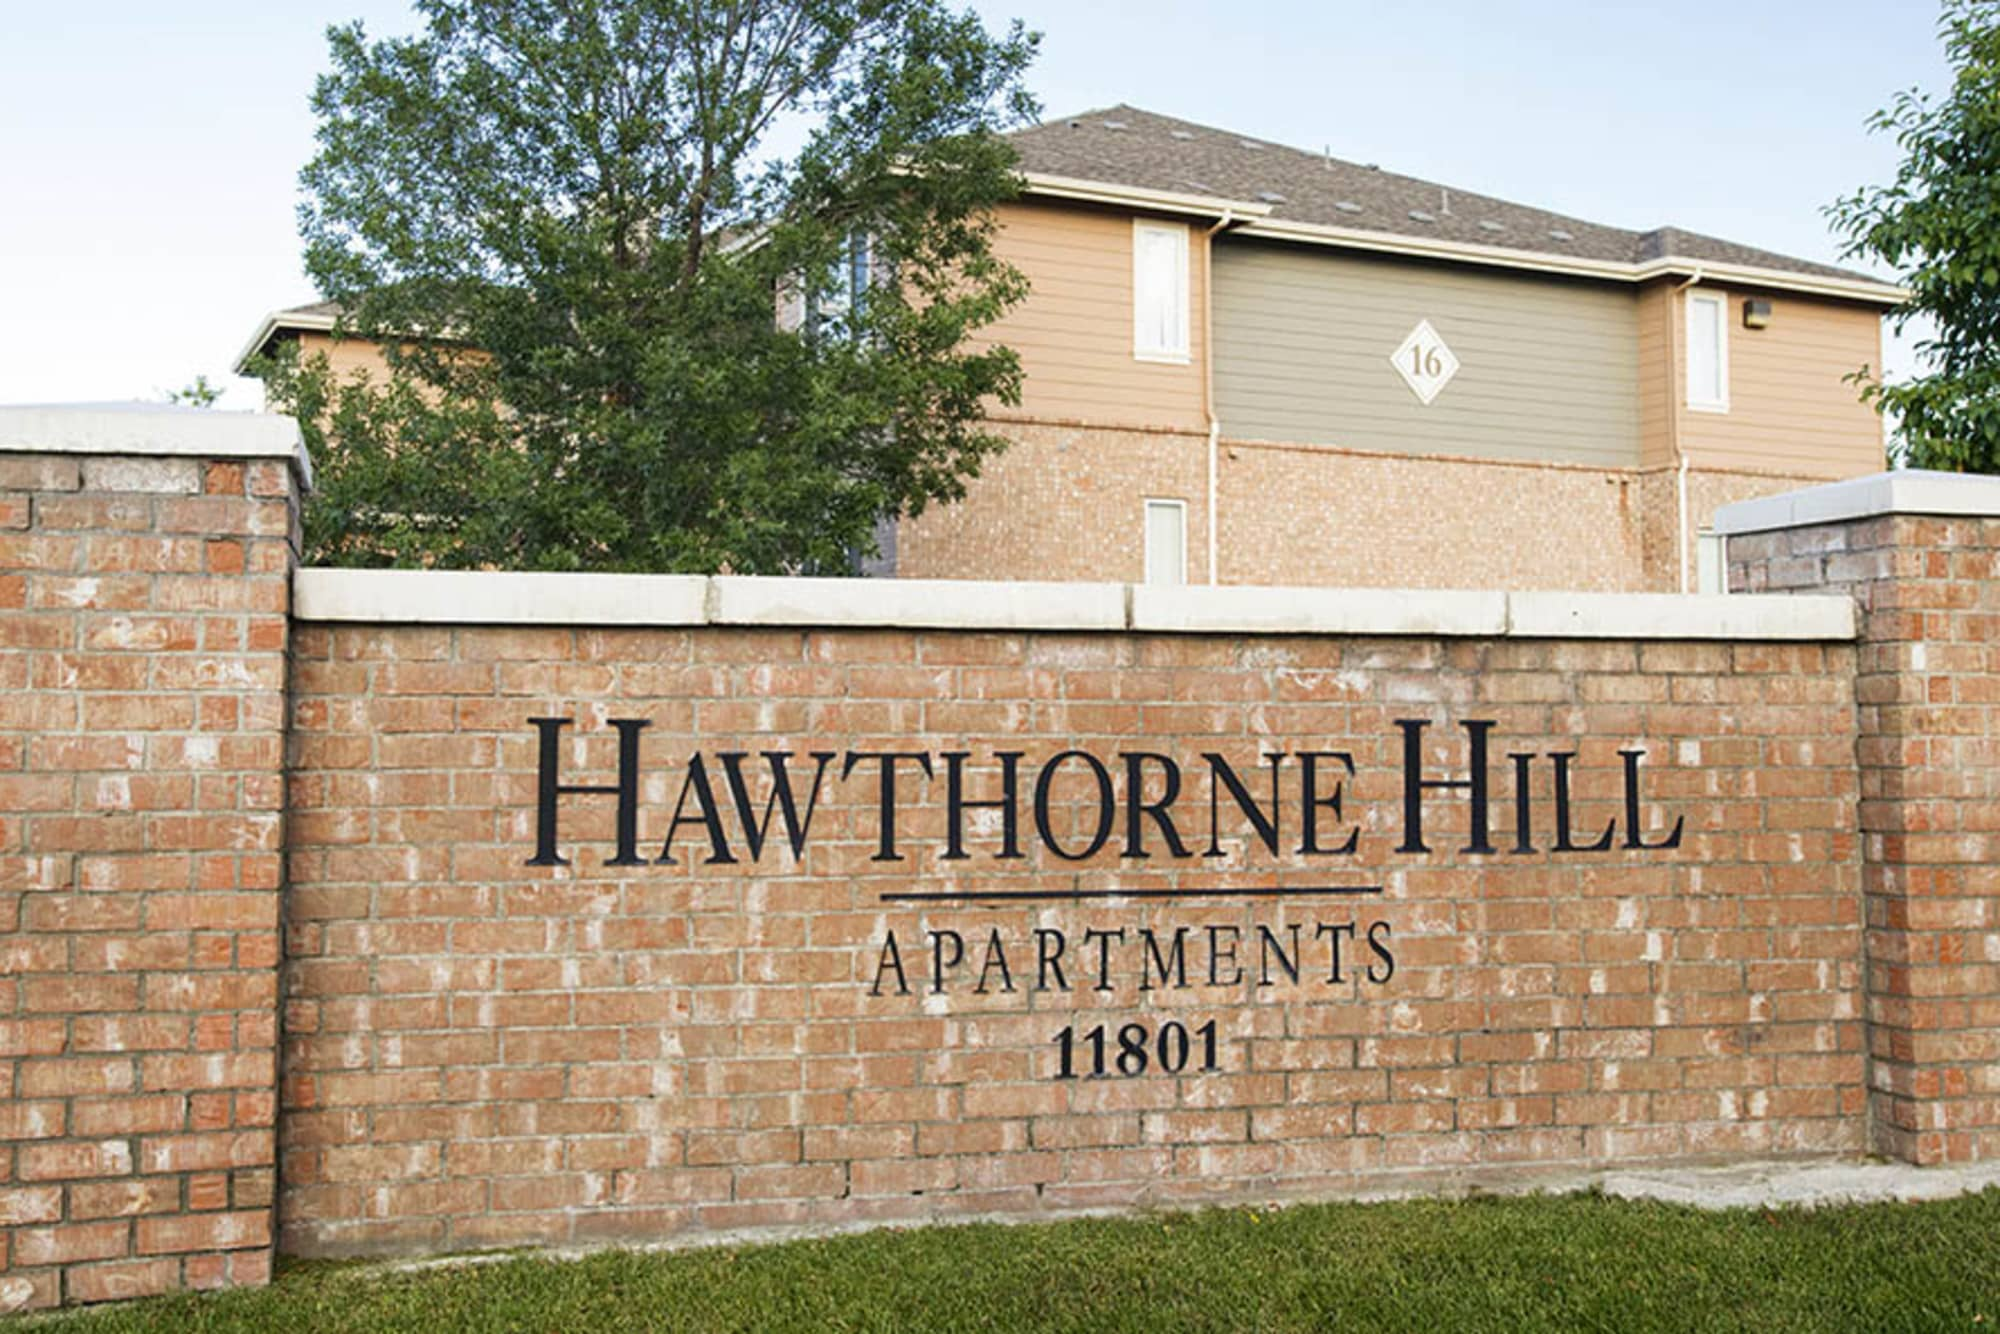 Hawthorne Hill Apartments signage